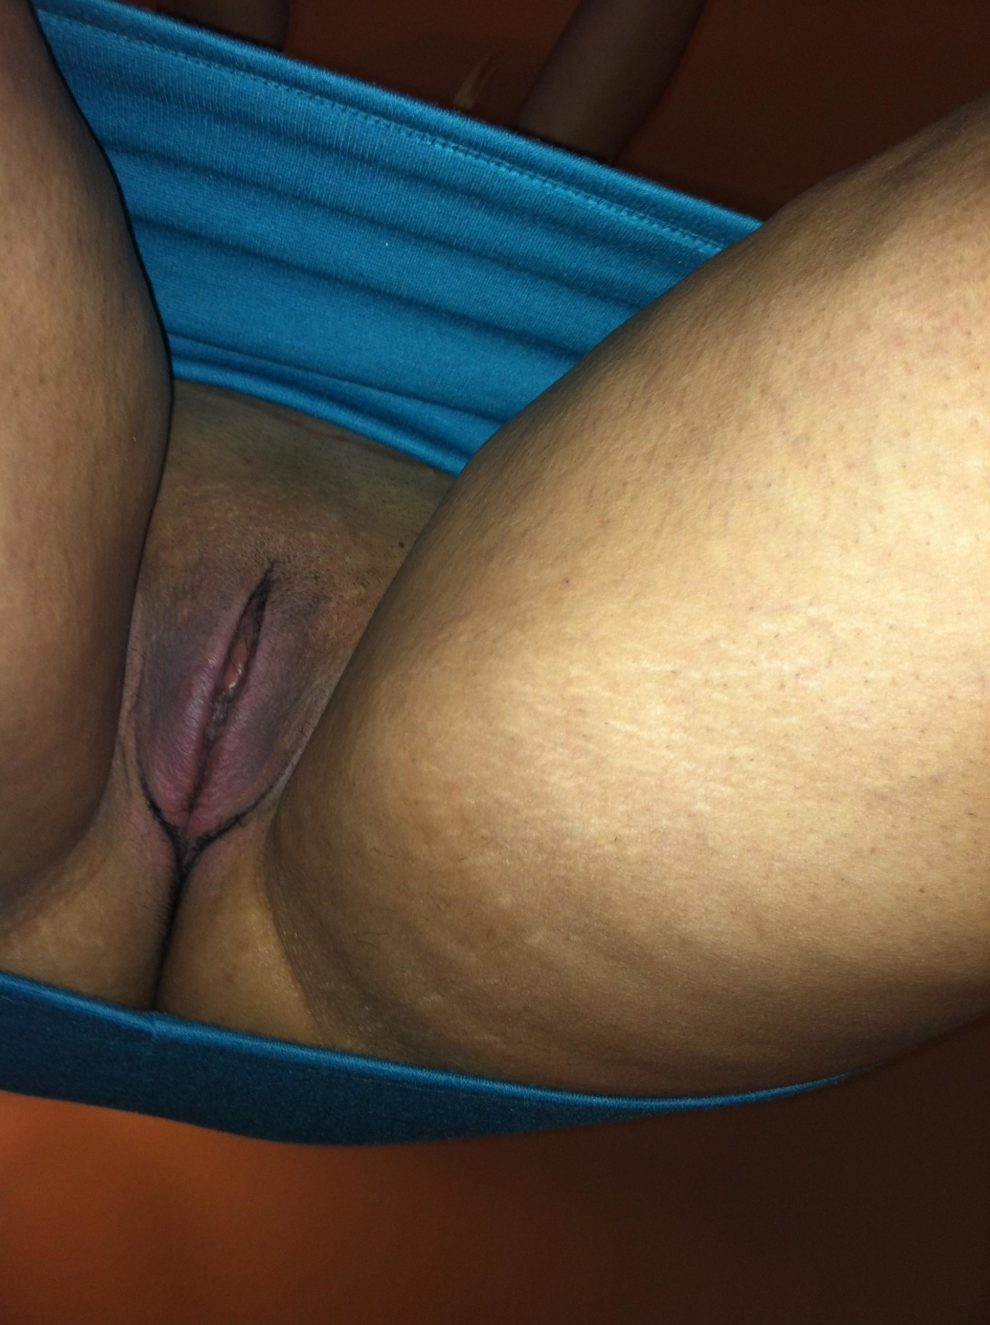 Wife's thick meaty pussy lips all swollen